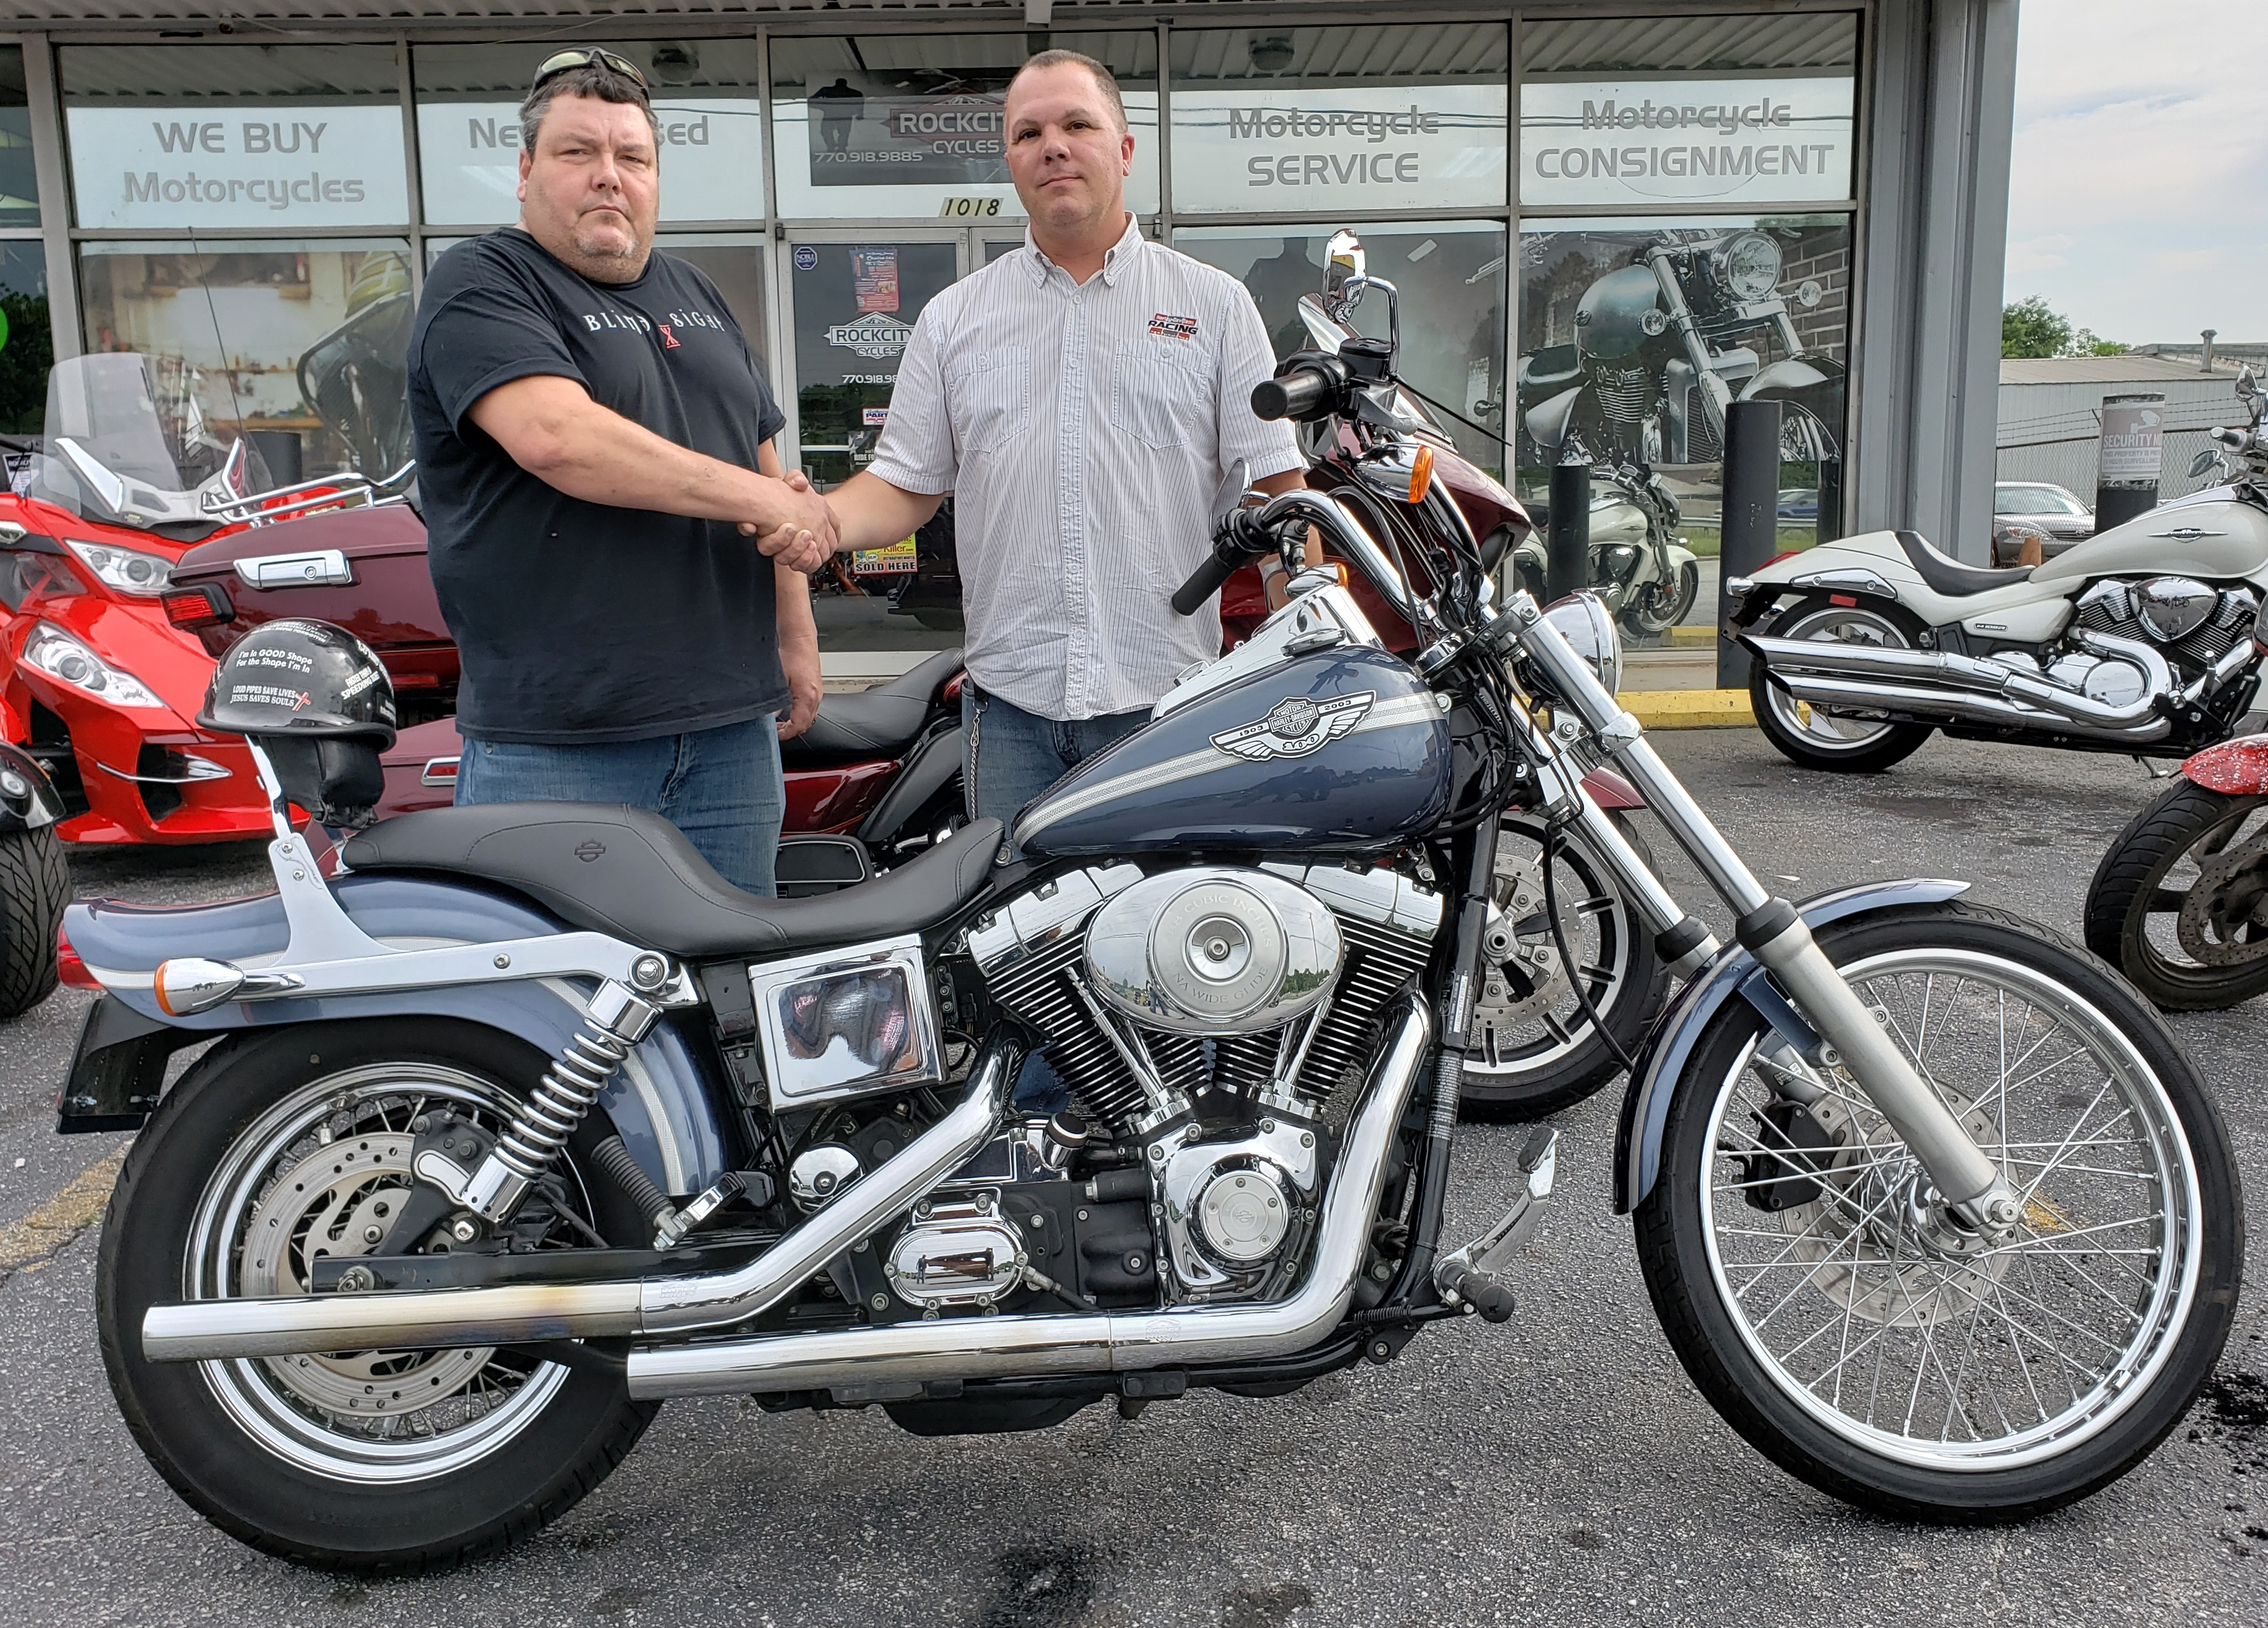 Edgar C. with 2003 Harley-Davidson FXDWG Dyna Wide Glide